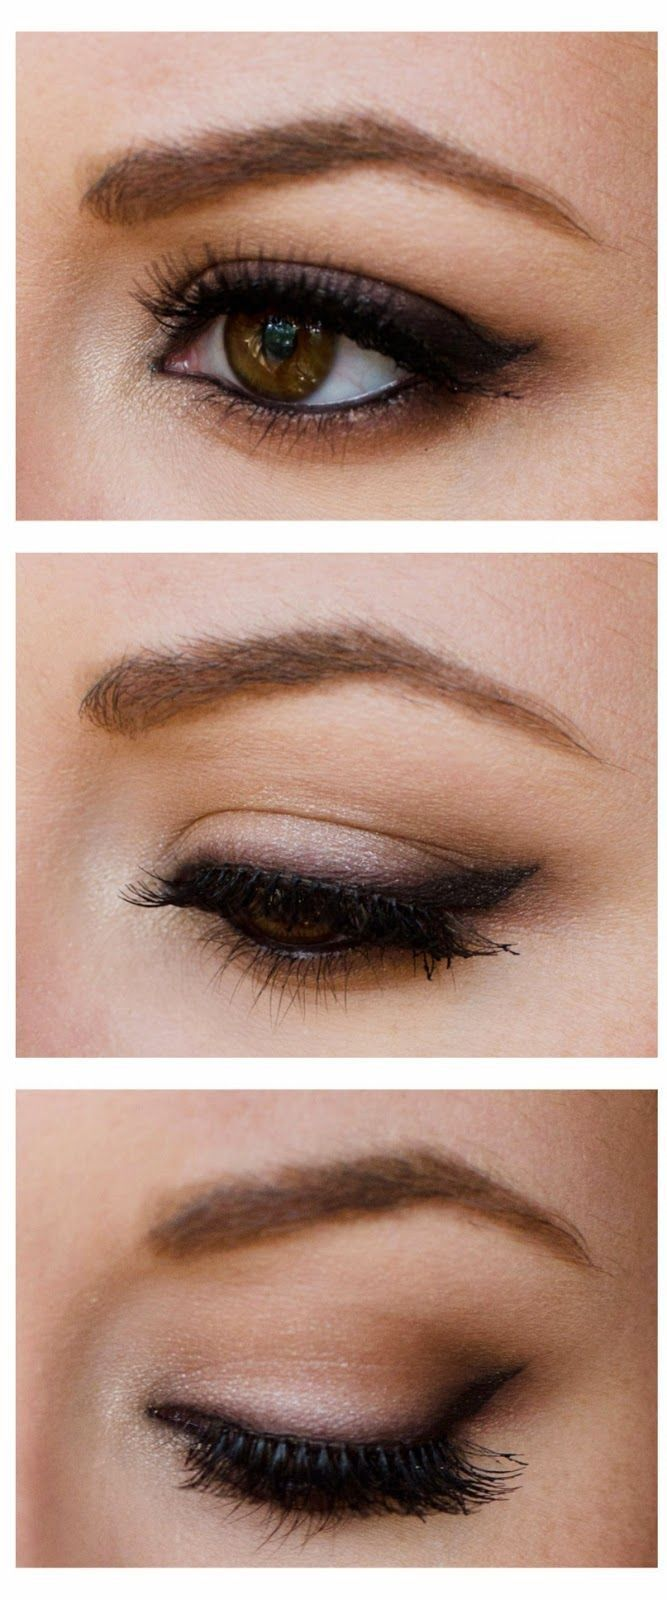 #eye #makeup More